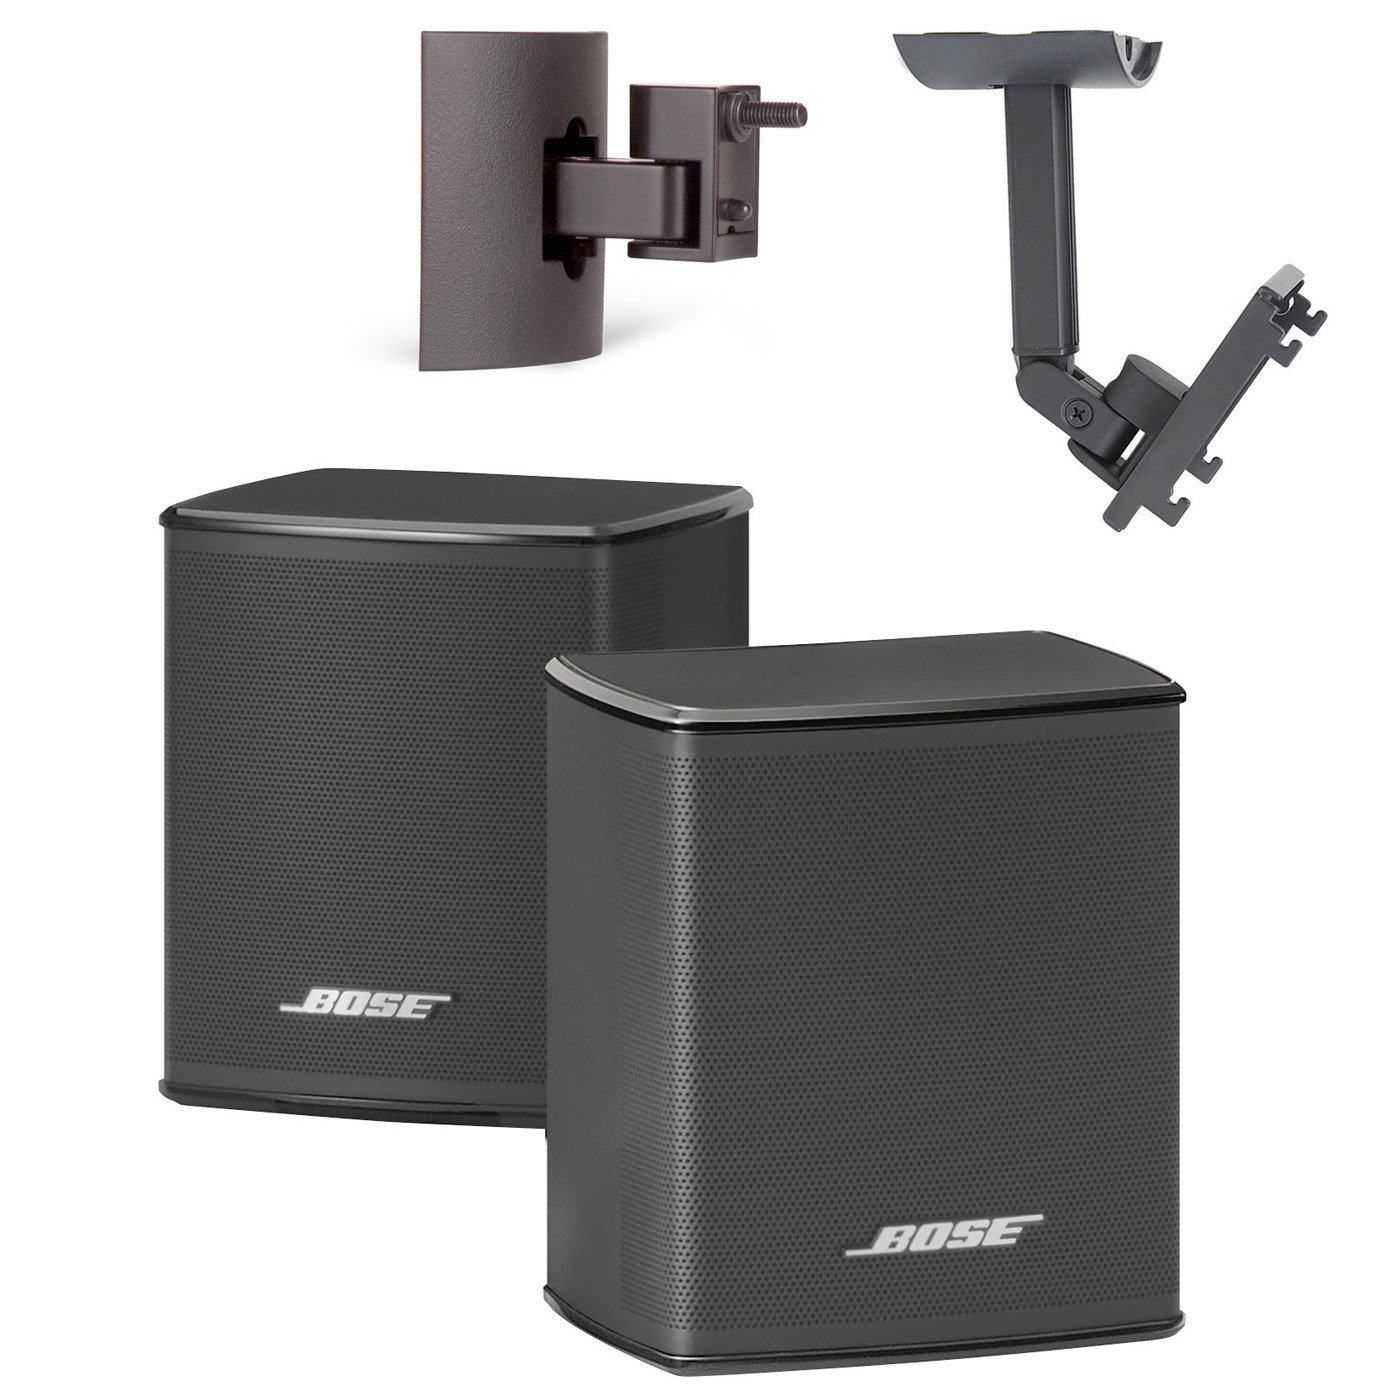 Ceiling Mounted Speakers Bose Taraba Home Review